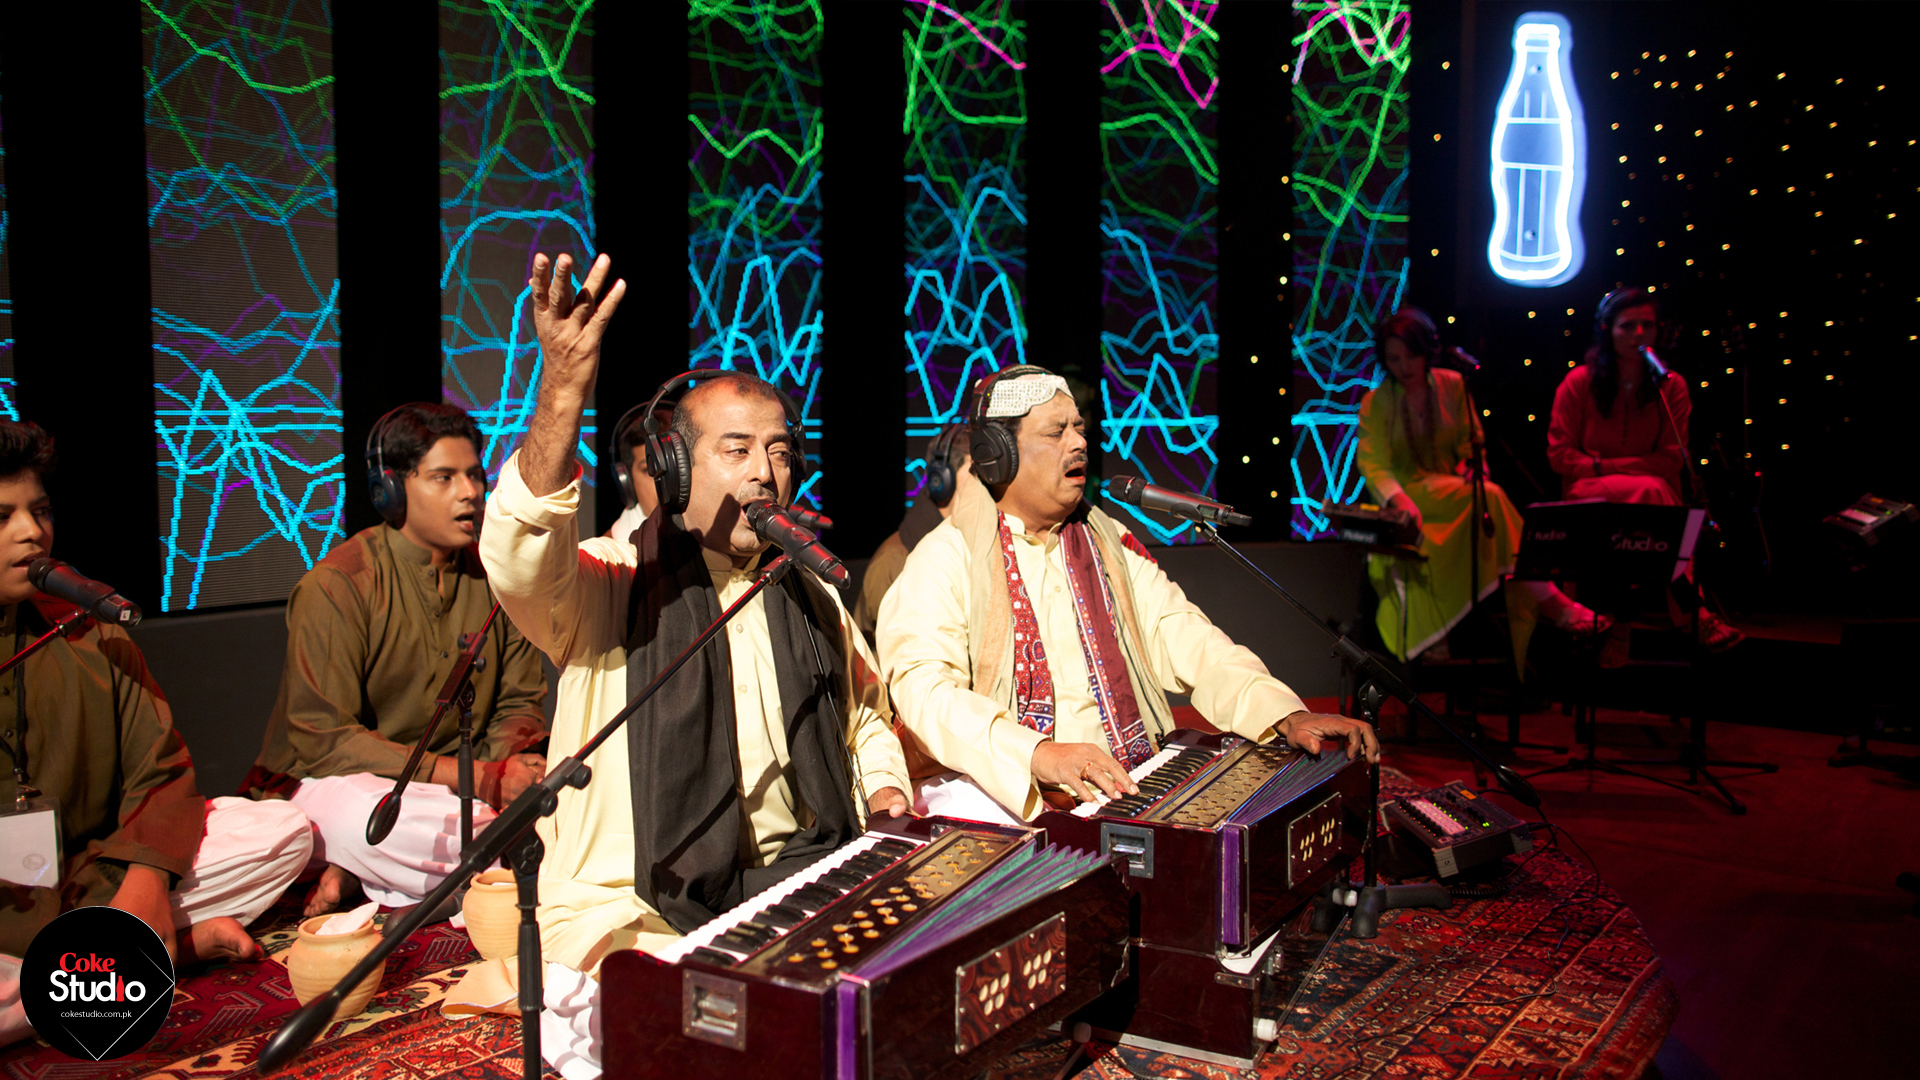 Fareed Ayaz and Abu Muhammad singing Rung Qawwali